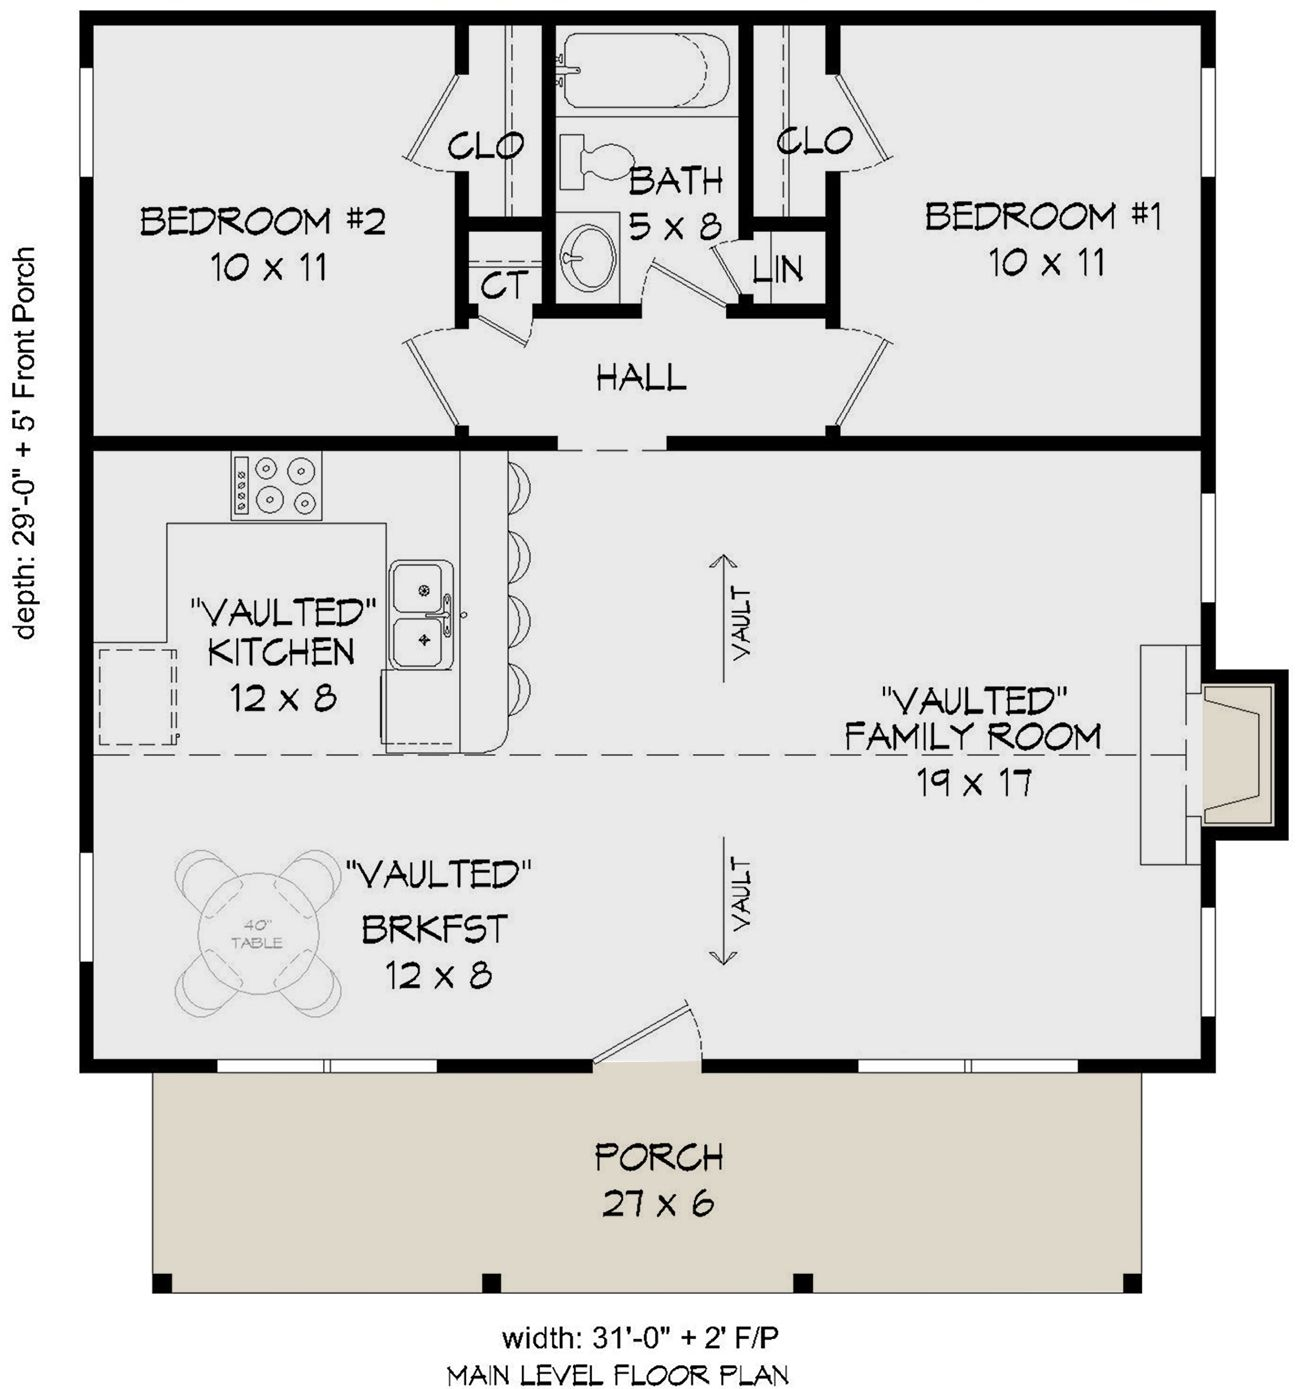 House Plan 940 00139 Cabin Plan 900 Square Feet 2 Bedrooms 1 Bathroom Floor Plans Cabin Plans Tiny House Floor Plans